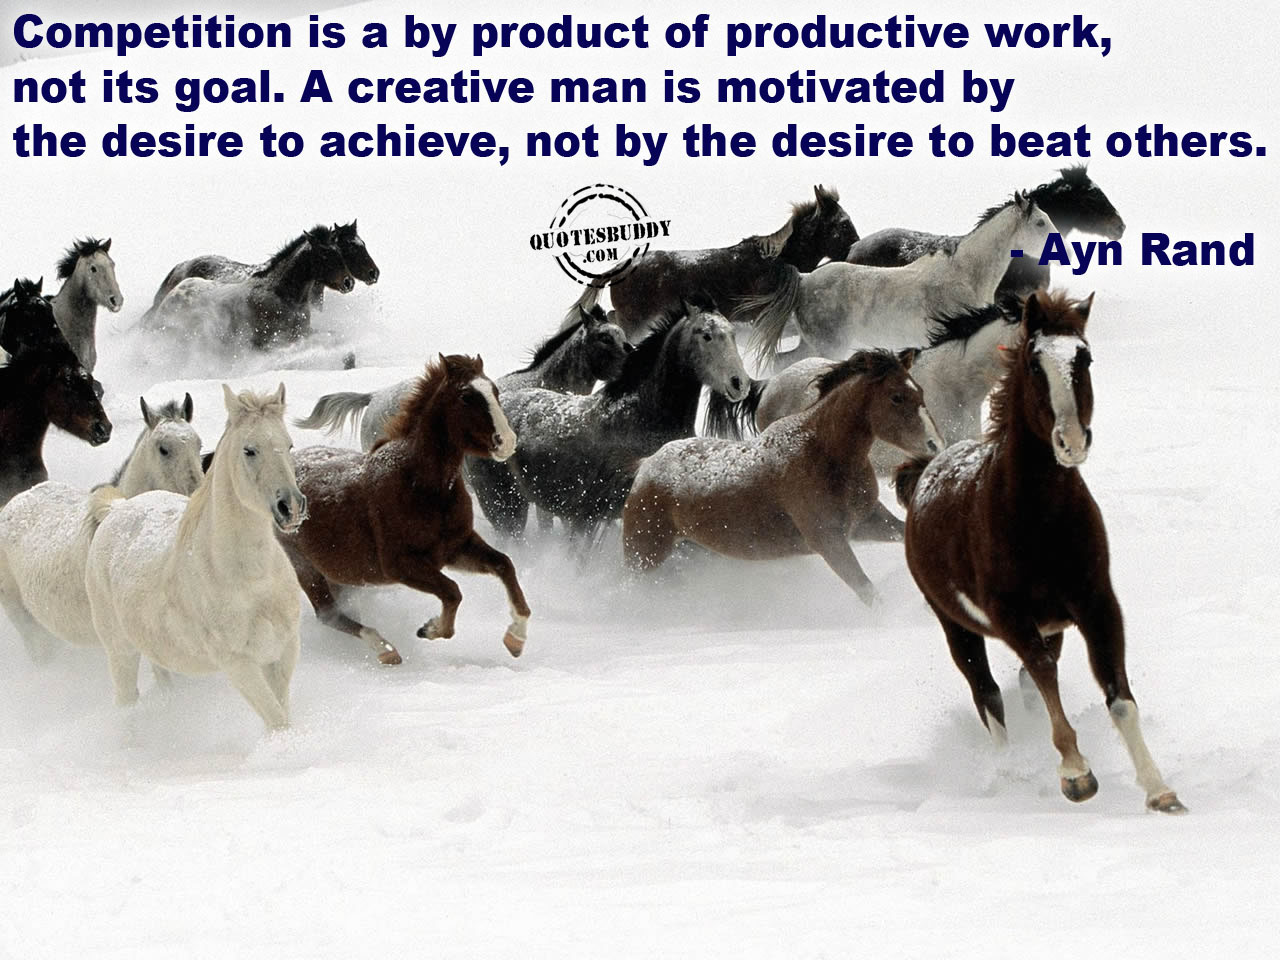 Competition is a by-product of productive work, not its goal. A creative man is motivated by the desire to achieve, not by the desire to beat others. Ayn Rand